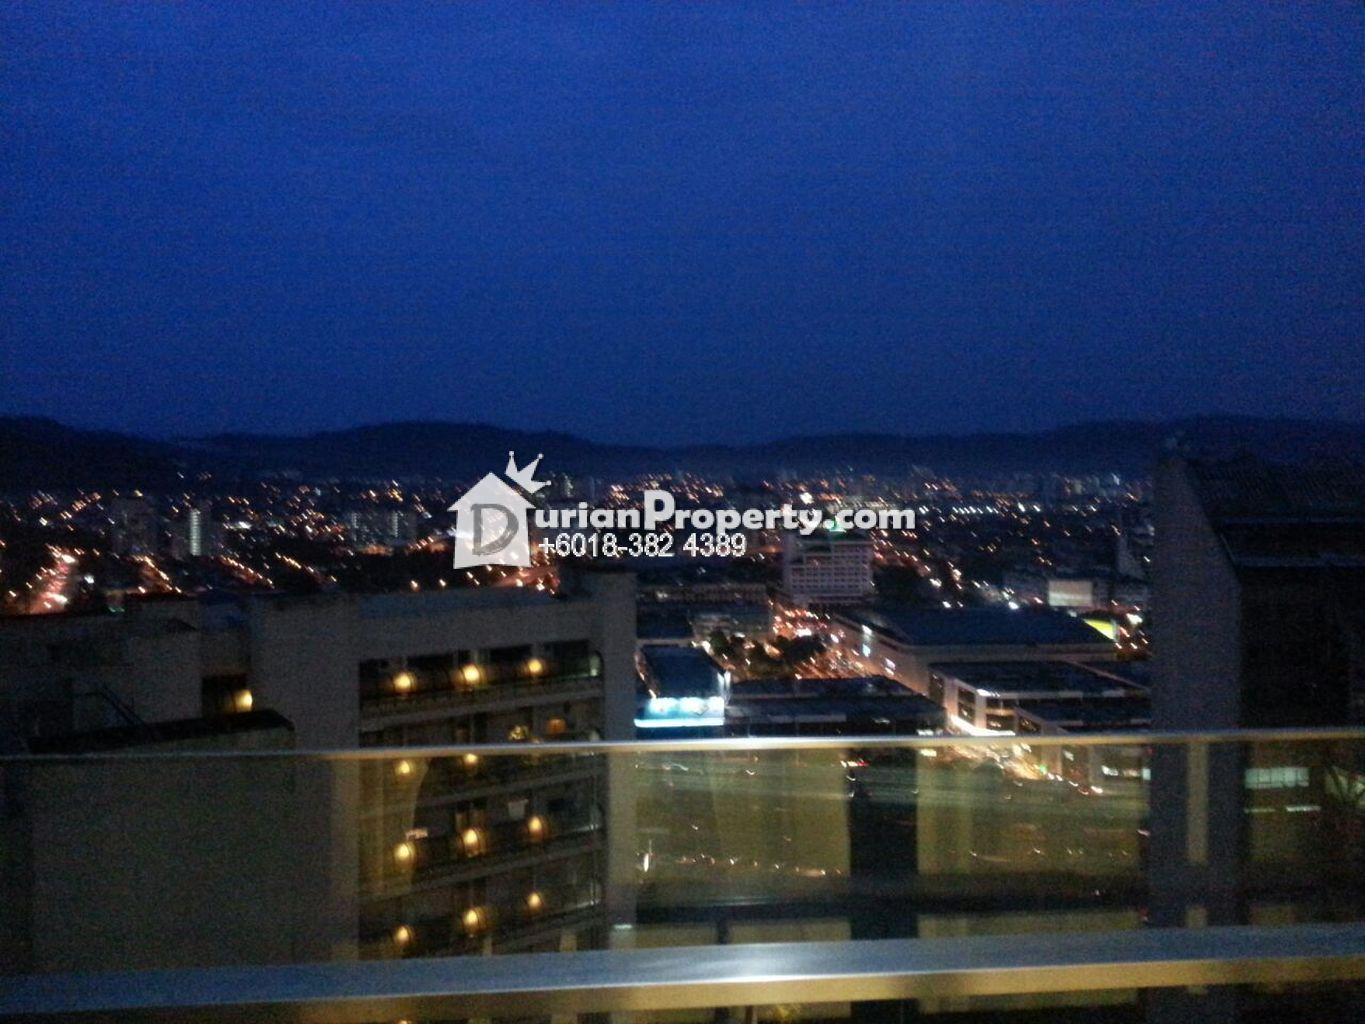 Condo for sale at the elements ampang hilir for rm560000 by kris wong